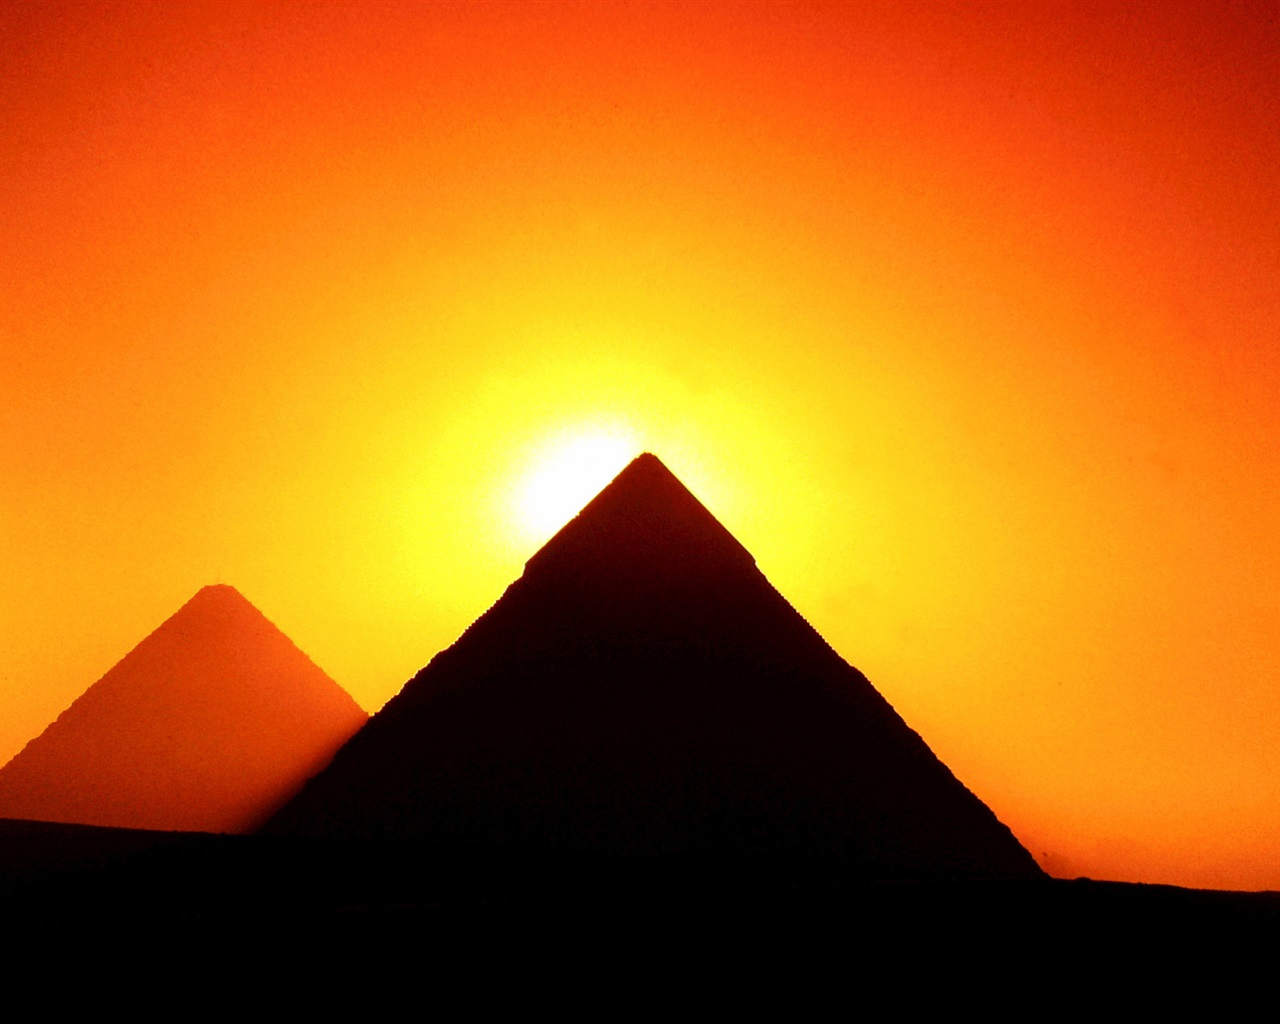 Glass Pyramid Of Kaiser Tres 181190636 in addition El Egregor further Watch moreover 4252514 likewise Postimg 233650. on pyramids wallpaper